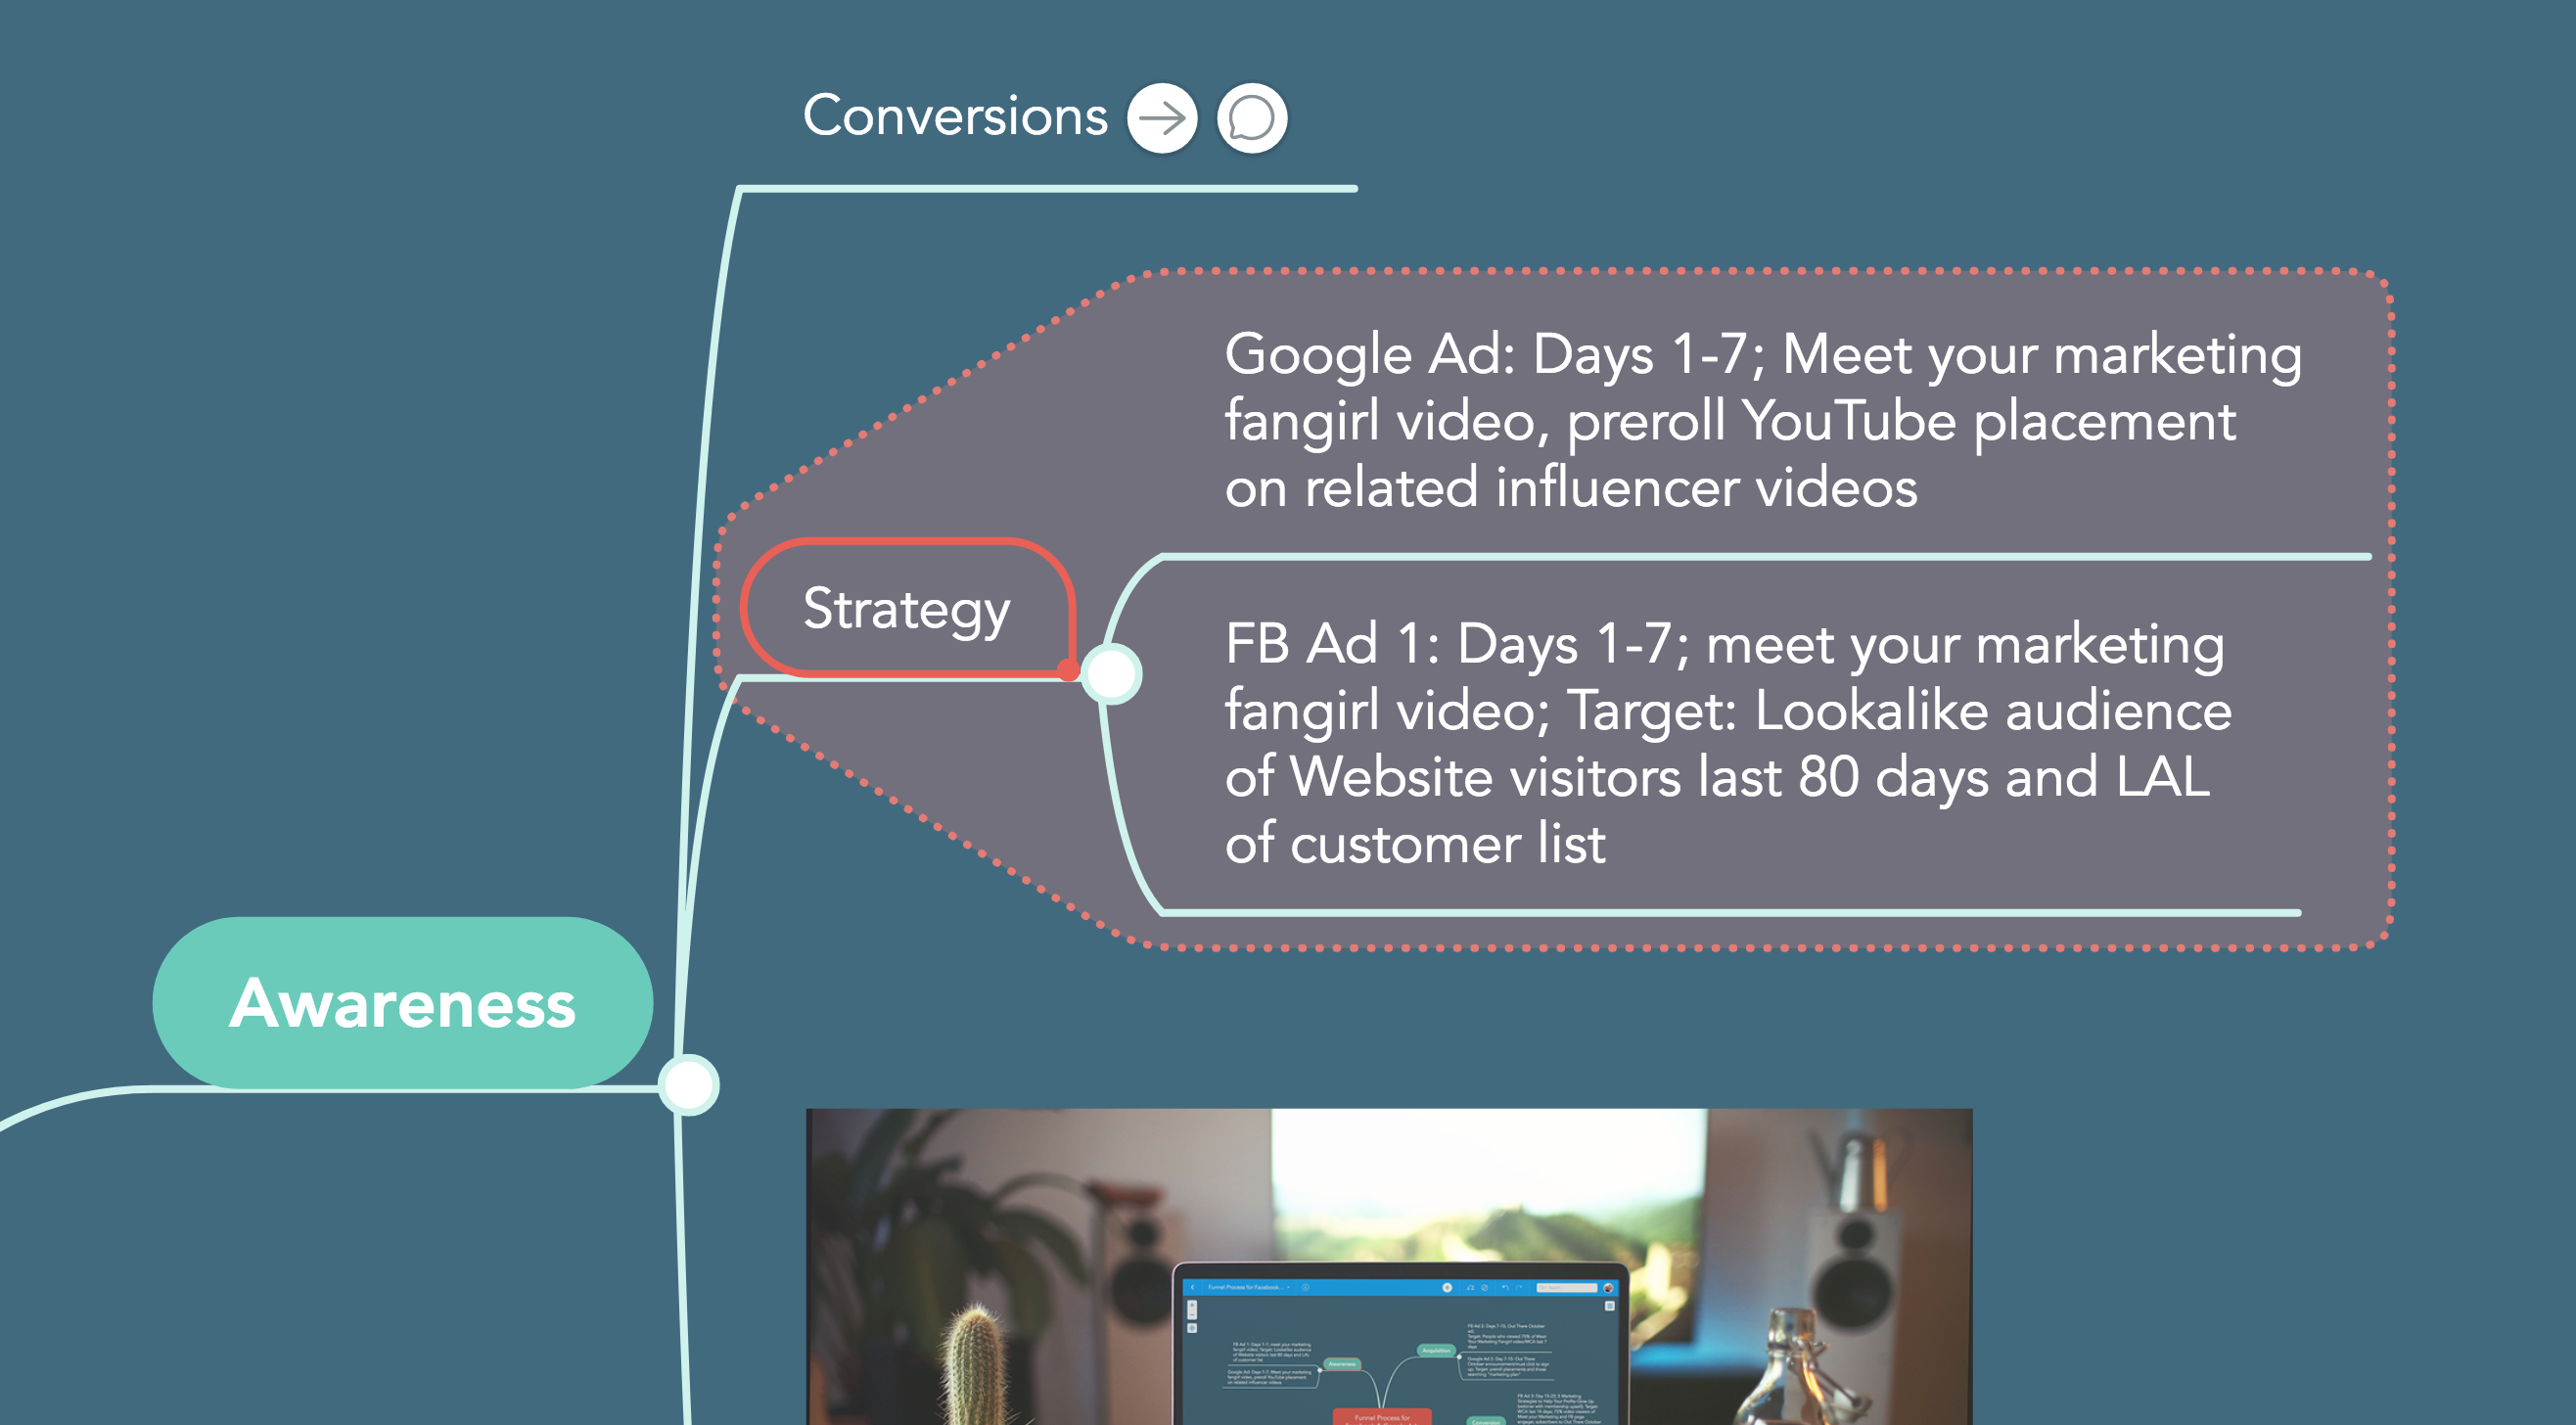 strategy awareness customer life cycle MindMeister sales funnel facebook advertising google advertising